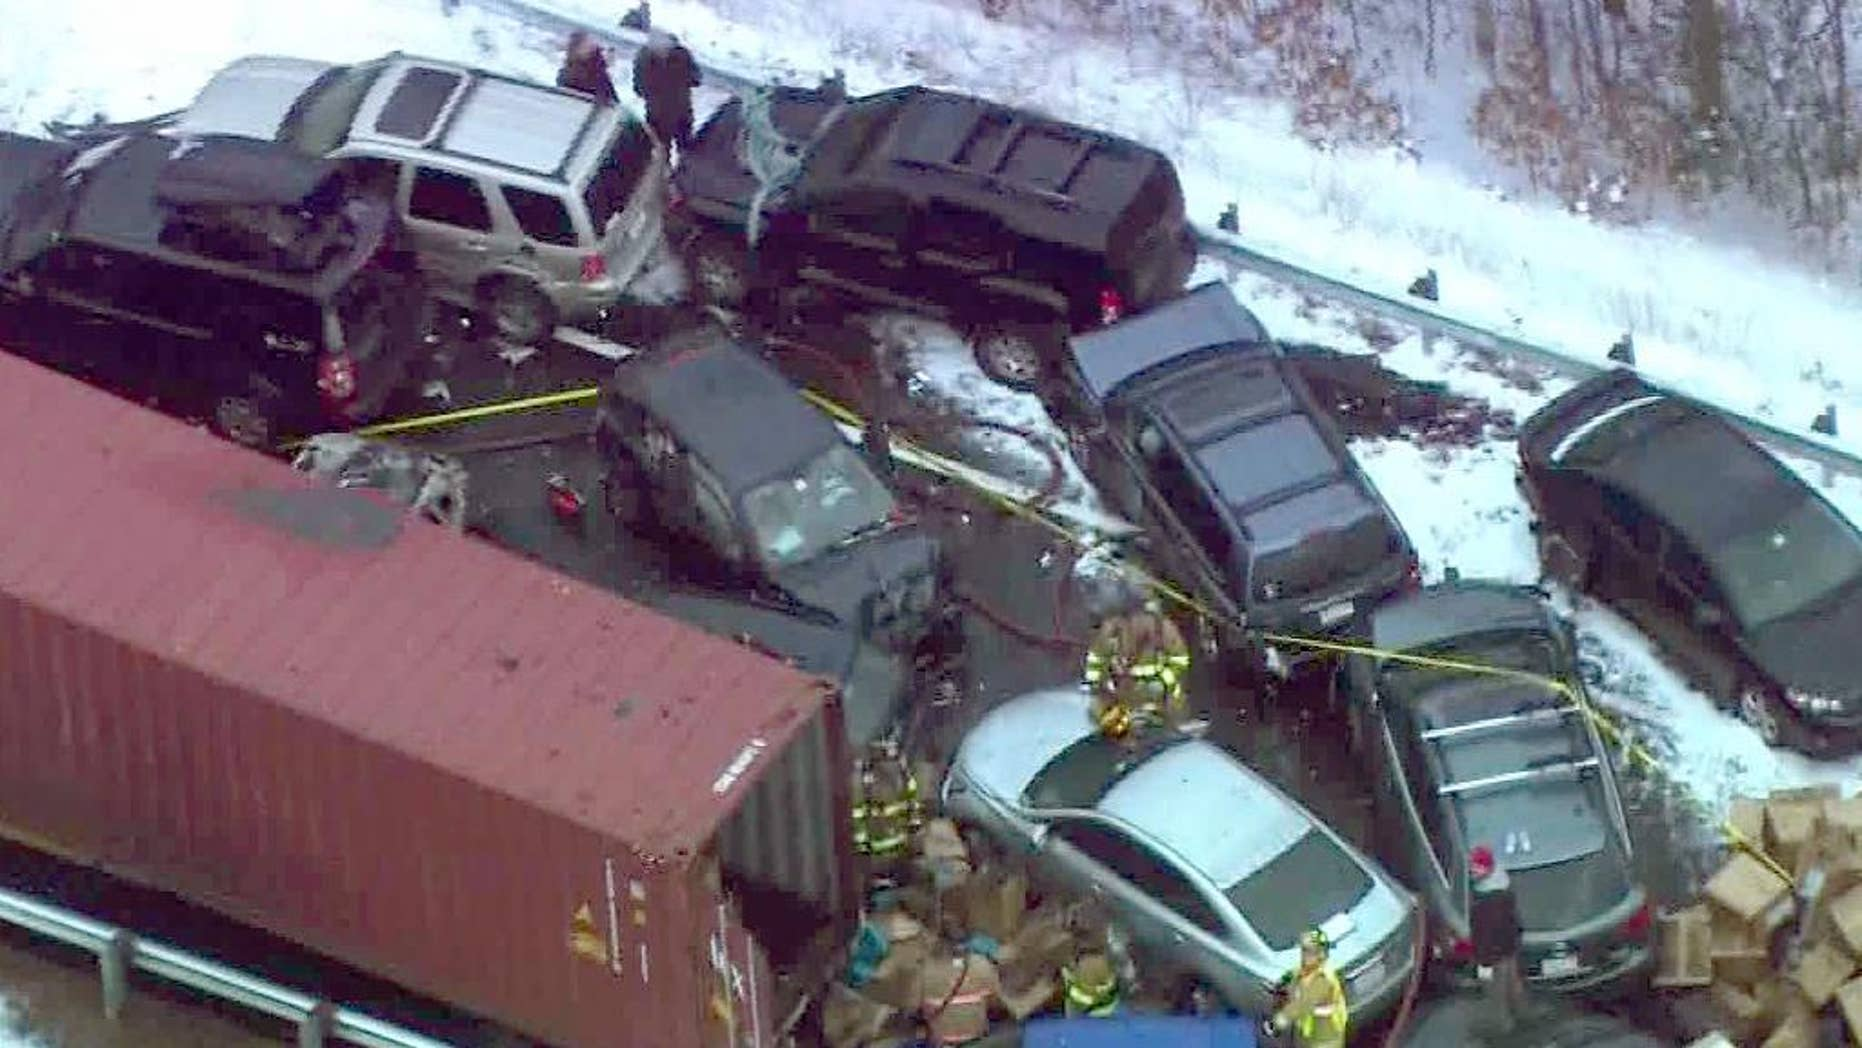 In this frame grab made from aerial video provided by WCVB-TV, emergency personnel work the scene along Interstate Route 93 near Ashland, N.H., where a New Hampshire State Police spokesman says 35 vehicles were involved in two separate pileups after some fast-moving snow squalls, Friday, Jan. 2, 2015. (AP Photo/WCVB-TV)